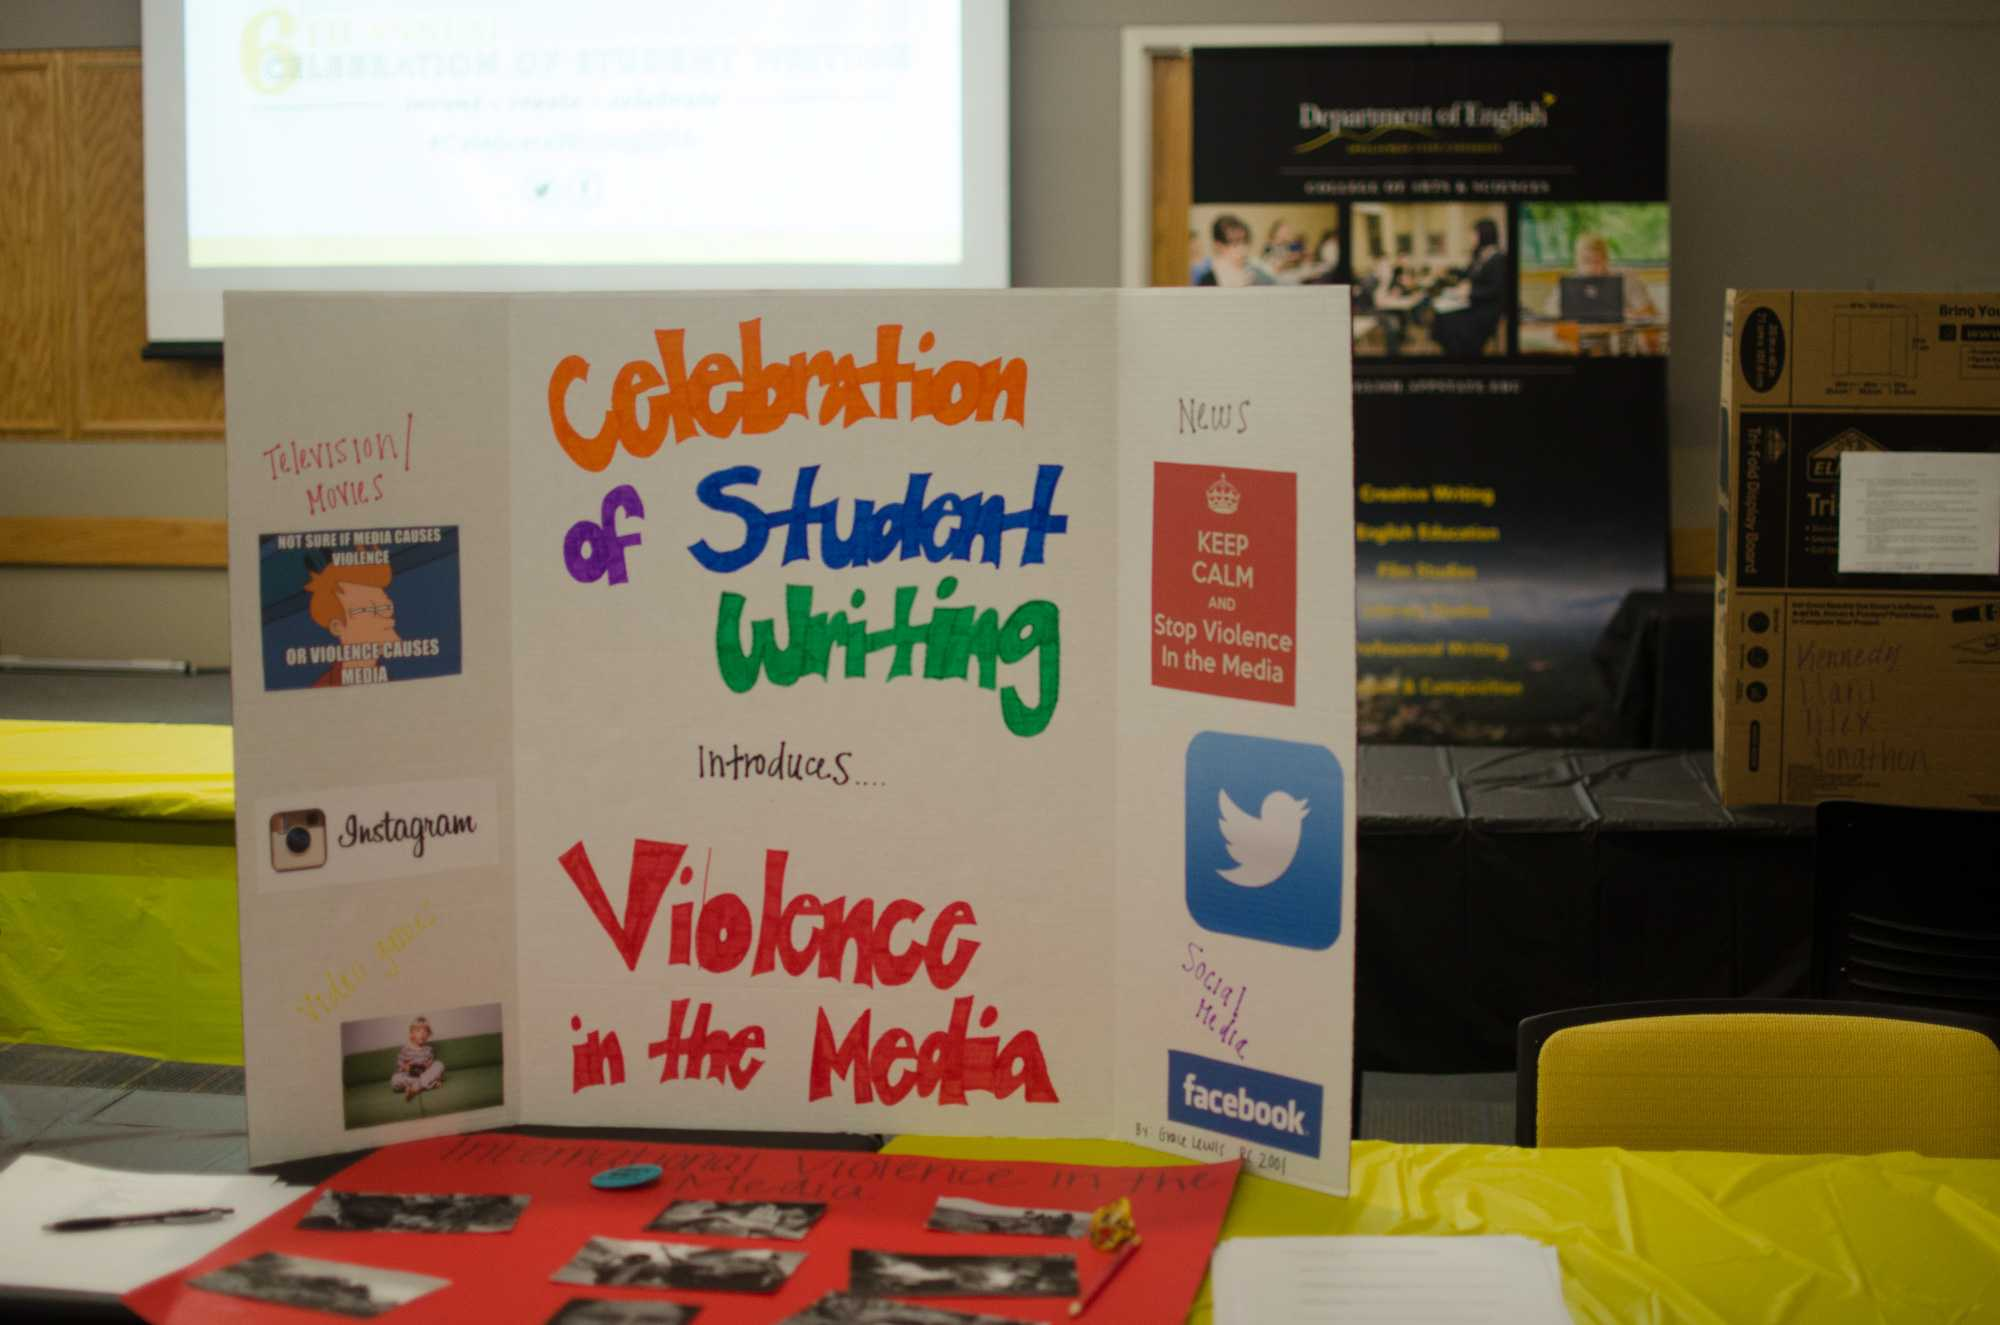 The Celebration of Student Writng event was on November 17th. It showcased a variety of projects written by students who have been working on their topics all semester long.